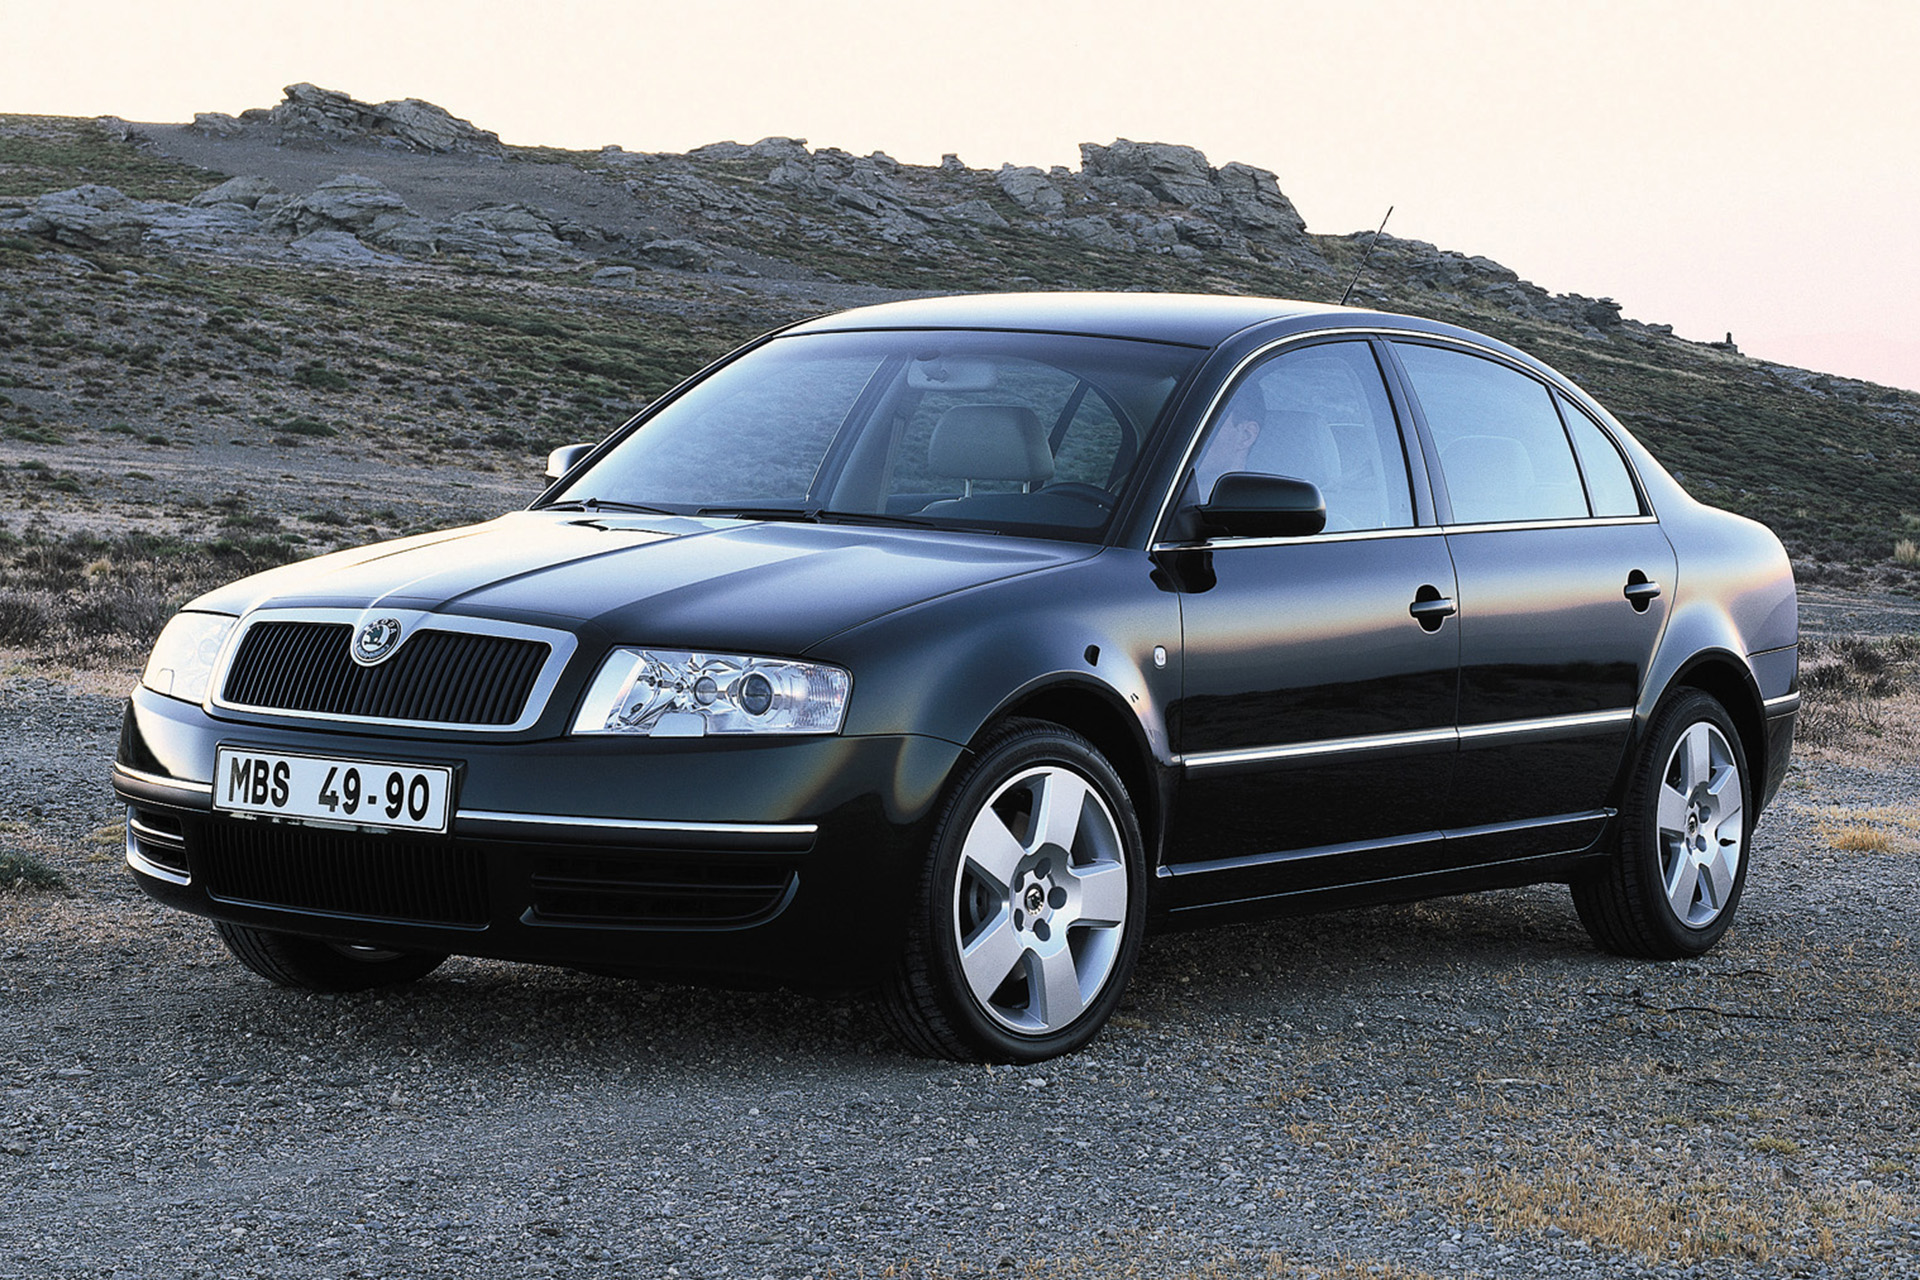 16 Cars That Use The Vag 18 20v Turbo Engine Haynes Publishing 2001 Audi All Road Diagram Skoda Superb